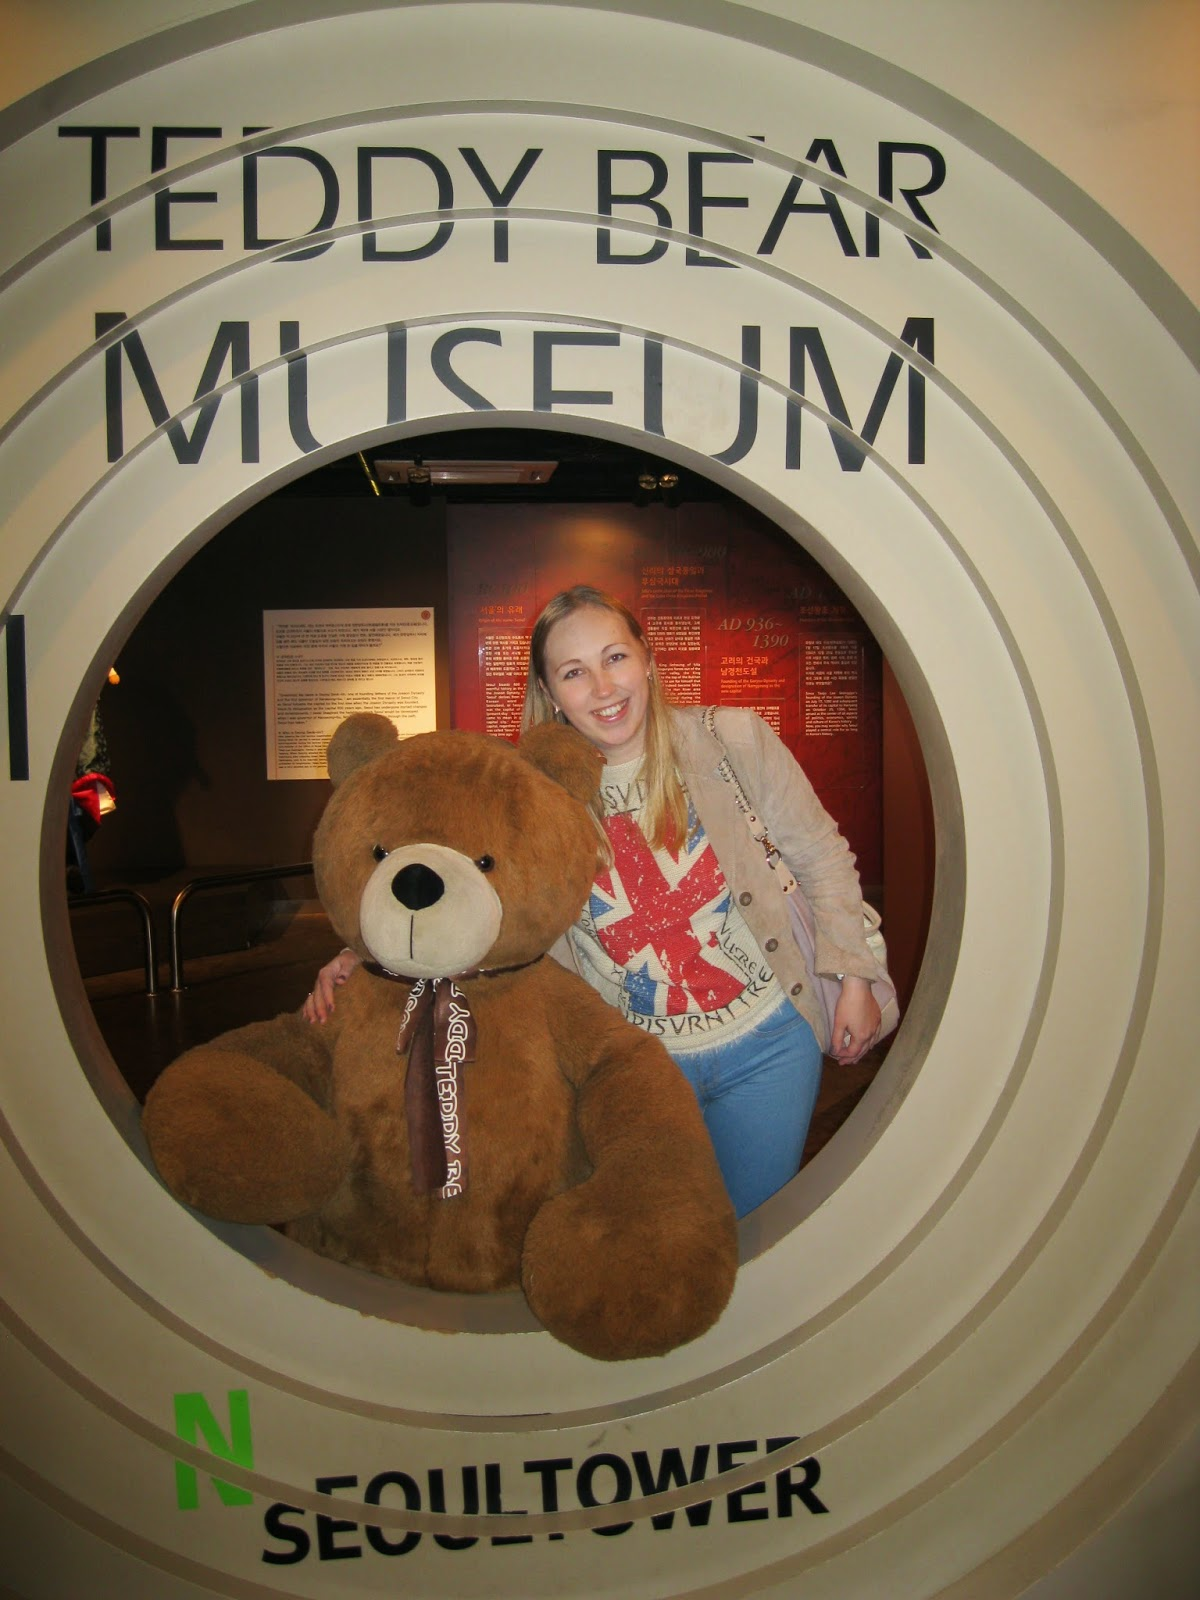 Teddy Bear Museum, мишки Тедди, Тедди, мишки, игрушки мишки